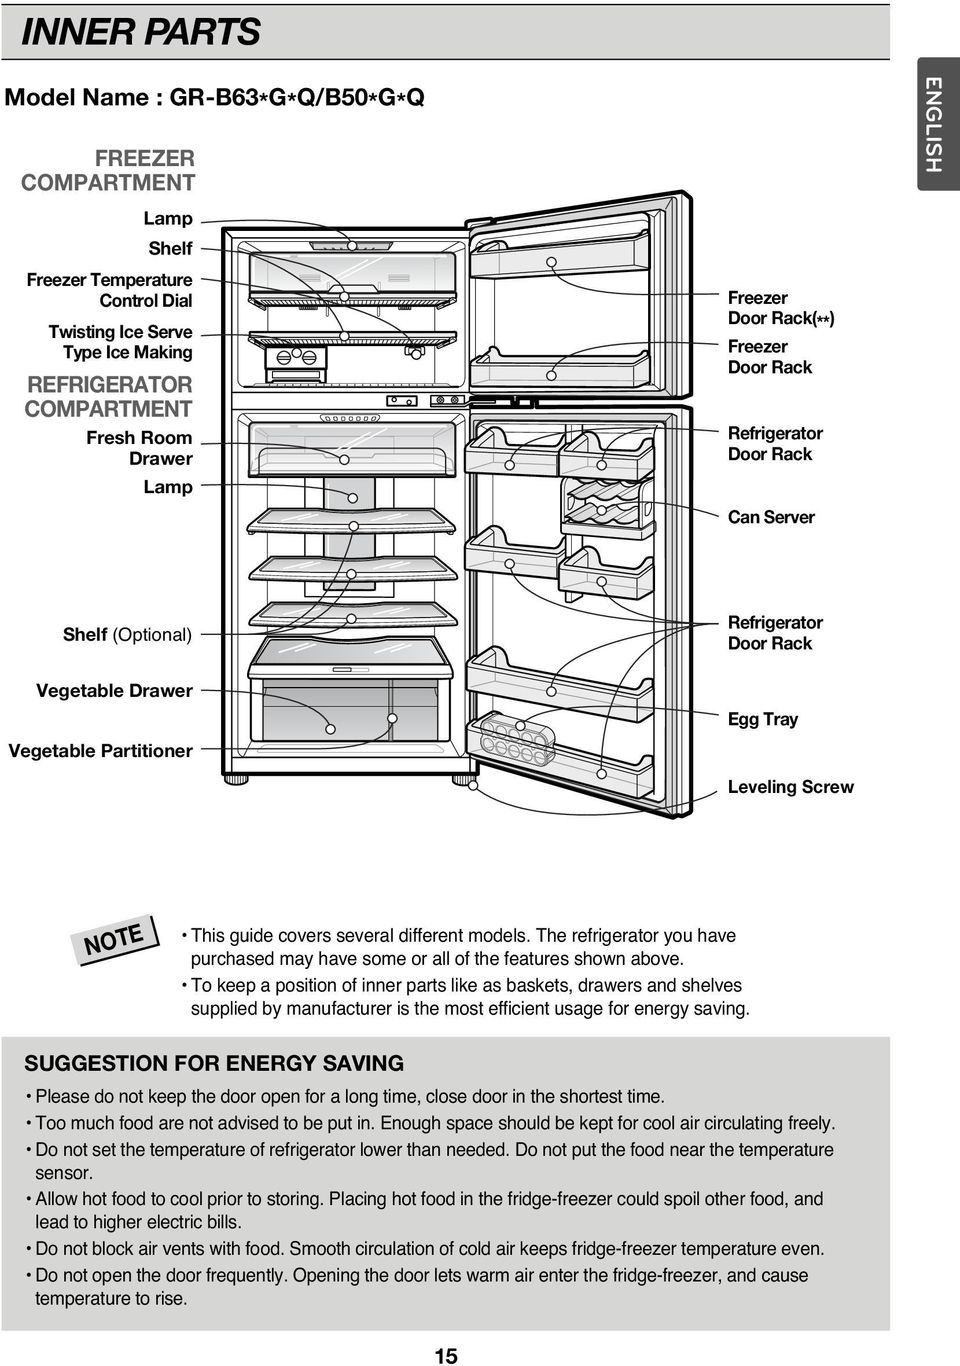 covers several different models. The refrigerator you have purchased may have some or all of the features shown above.